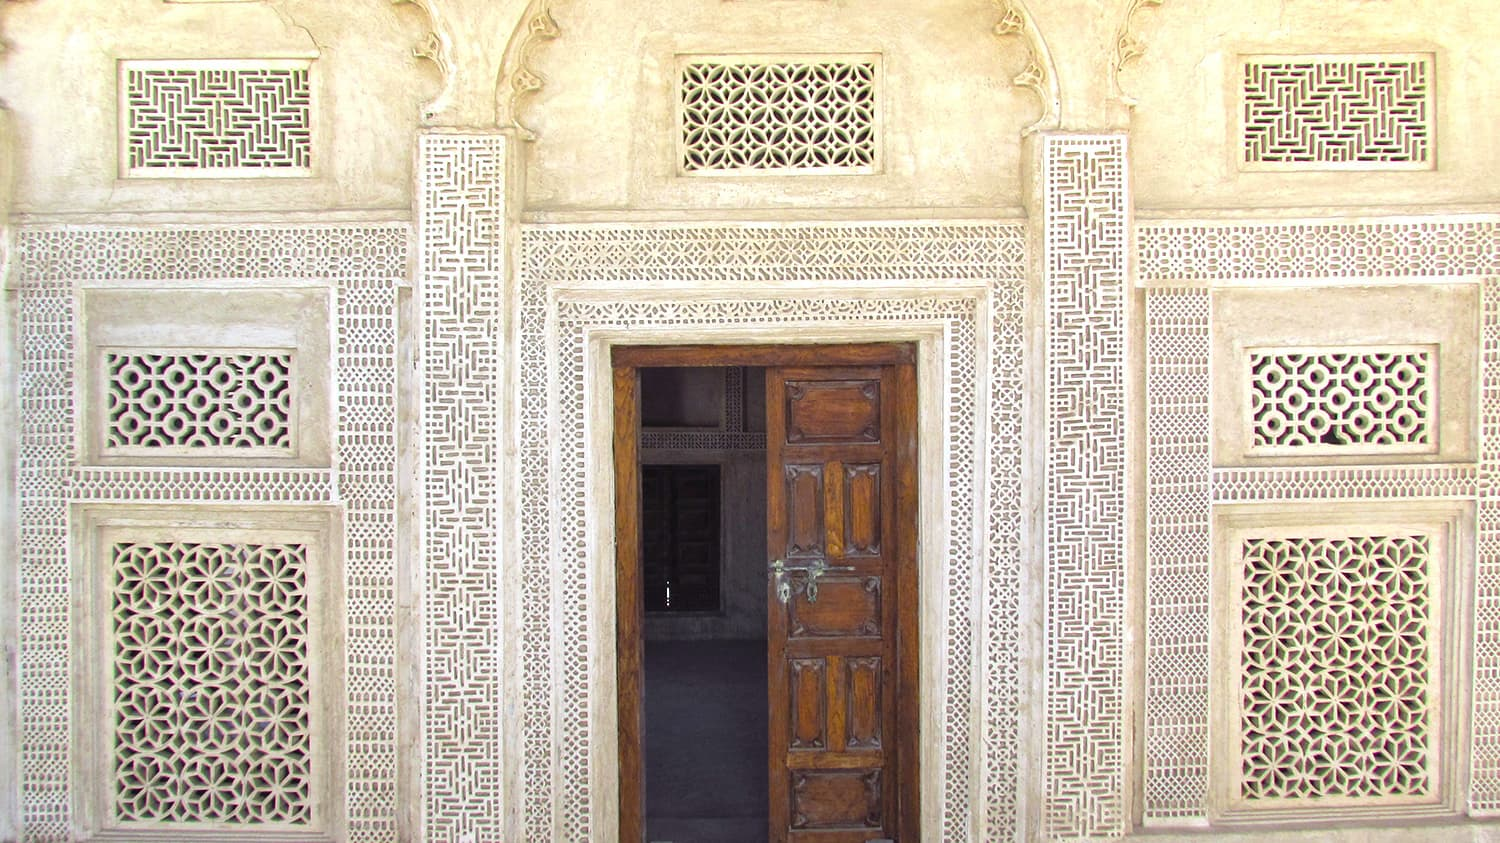 The doorway of one of the merchant's houses on the pearling trail.